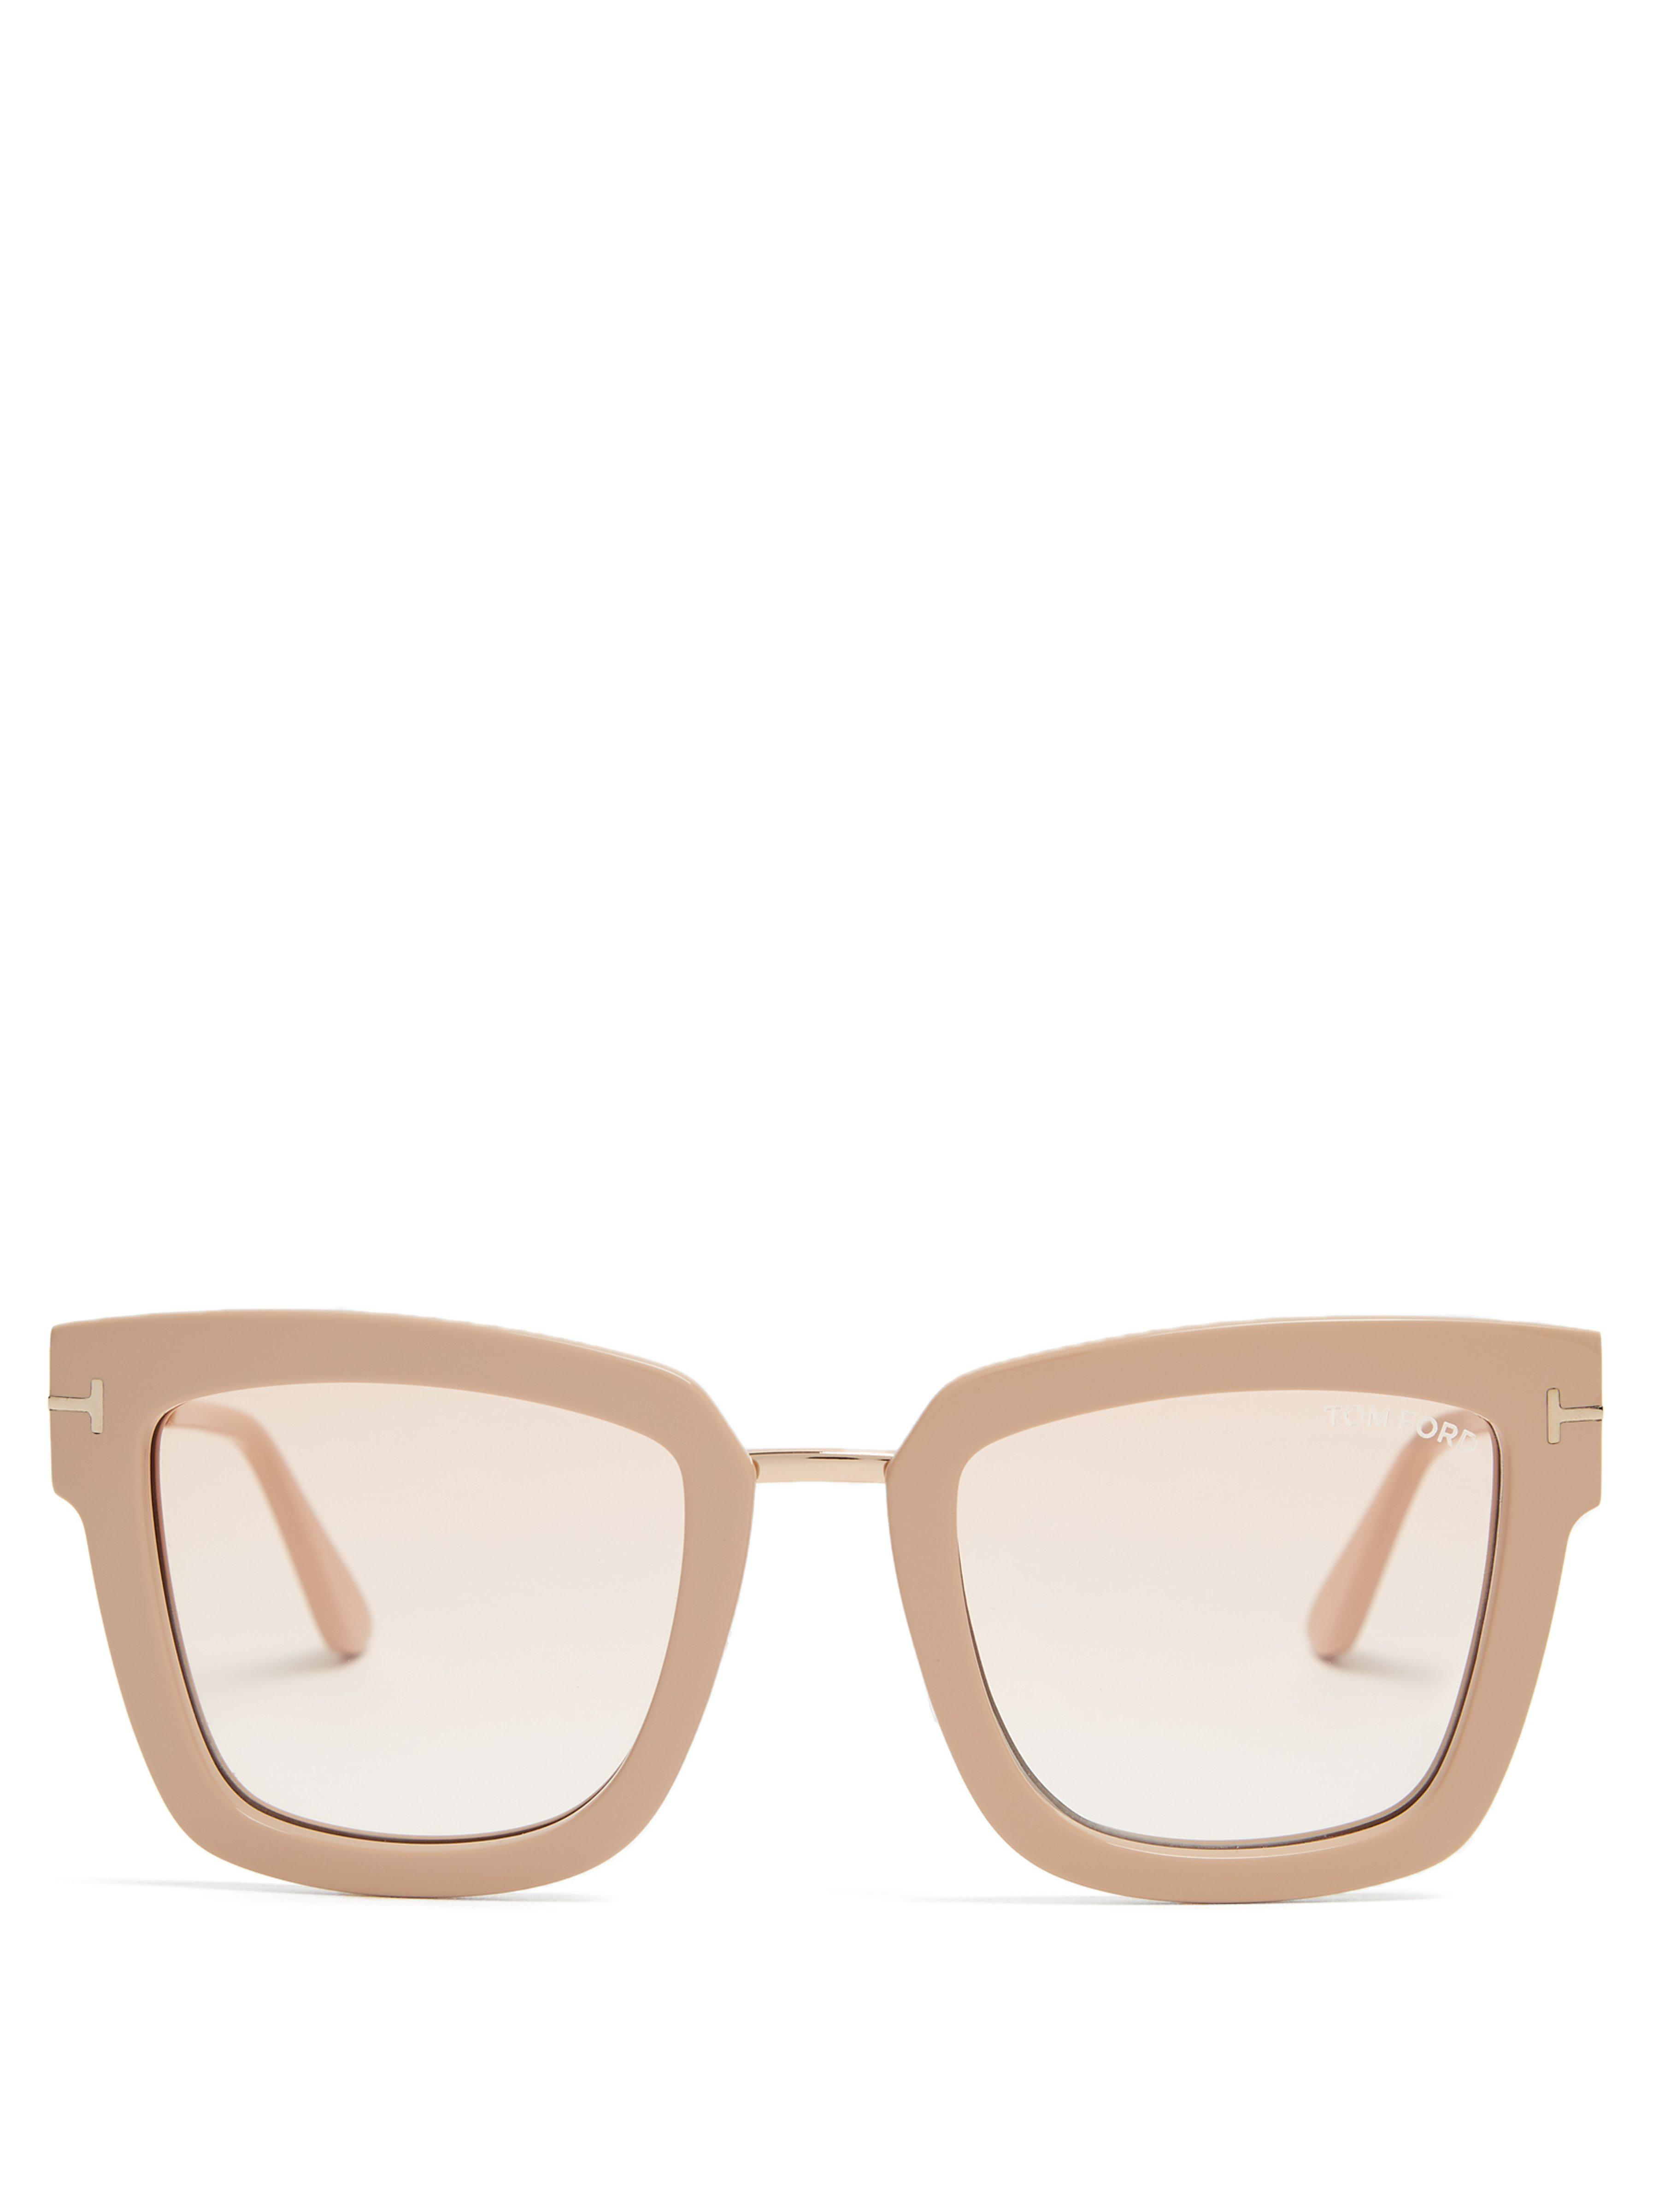 1bb7493cdb53 Tom Ford Lara Square-frame Sunglasses in Natural - Lyst